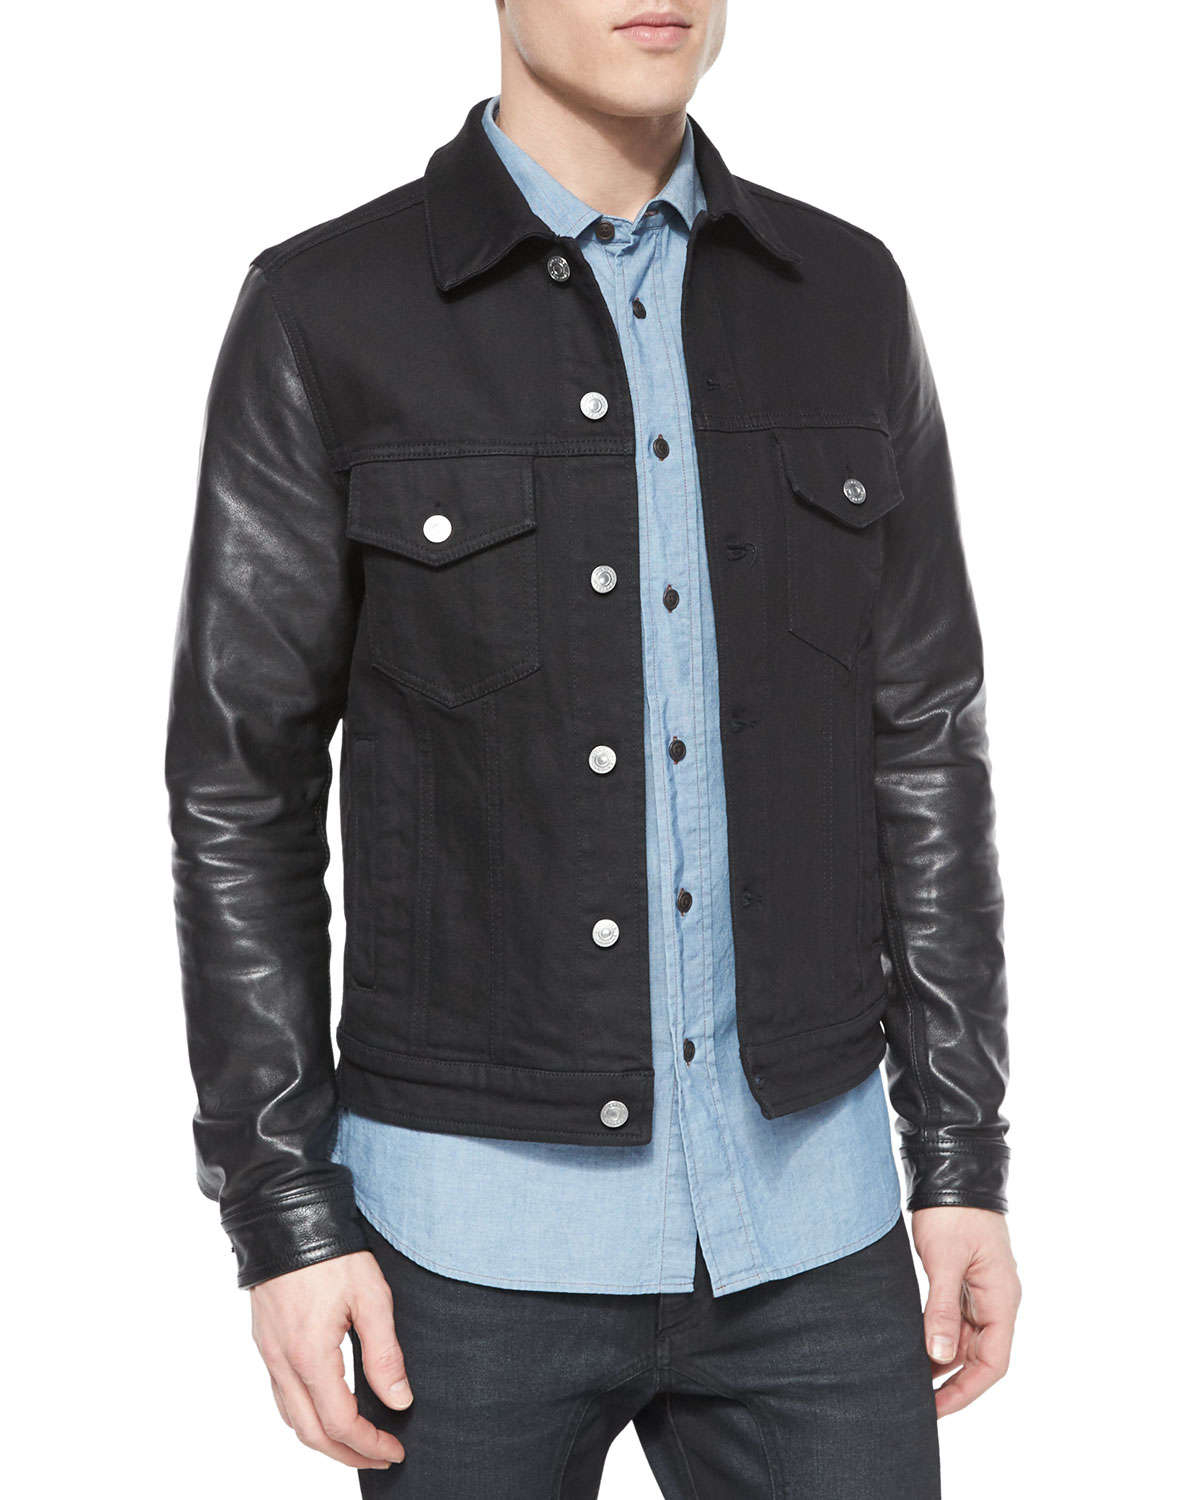 Find great deals on eBay for denim jacket leather sleeves and mens denim jacket leather sleeves. Shop with confidence.